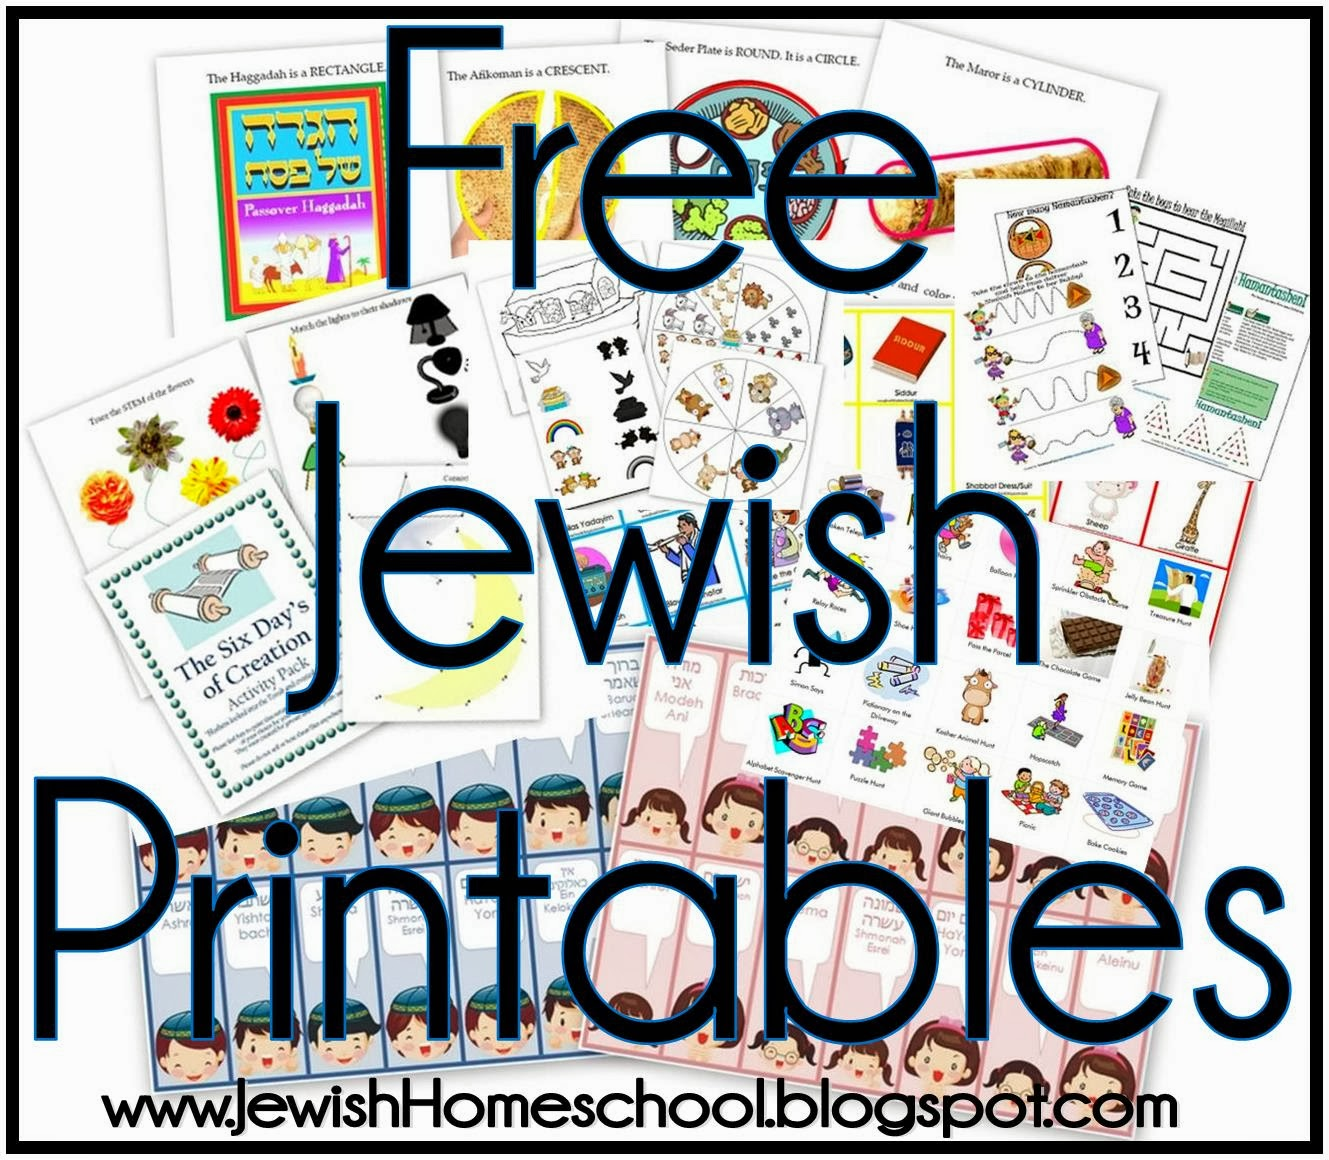 A Jewish Homeschool Blog Rosh Hashanah And Yom Kippur